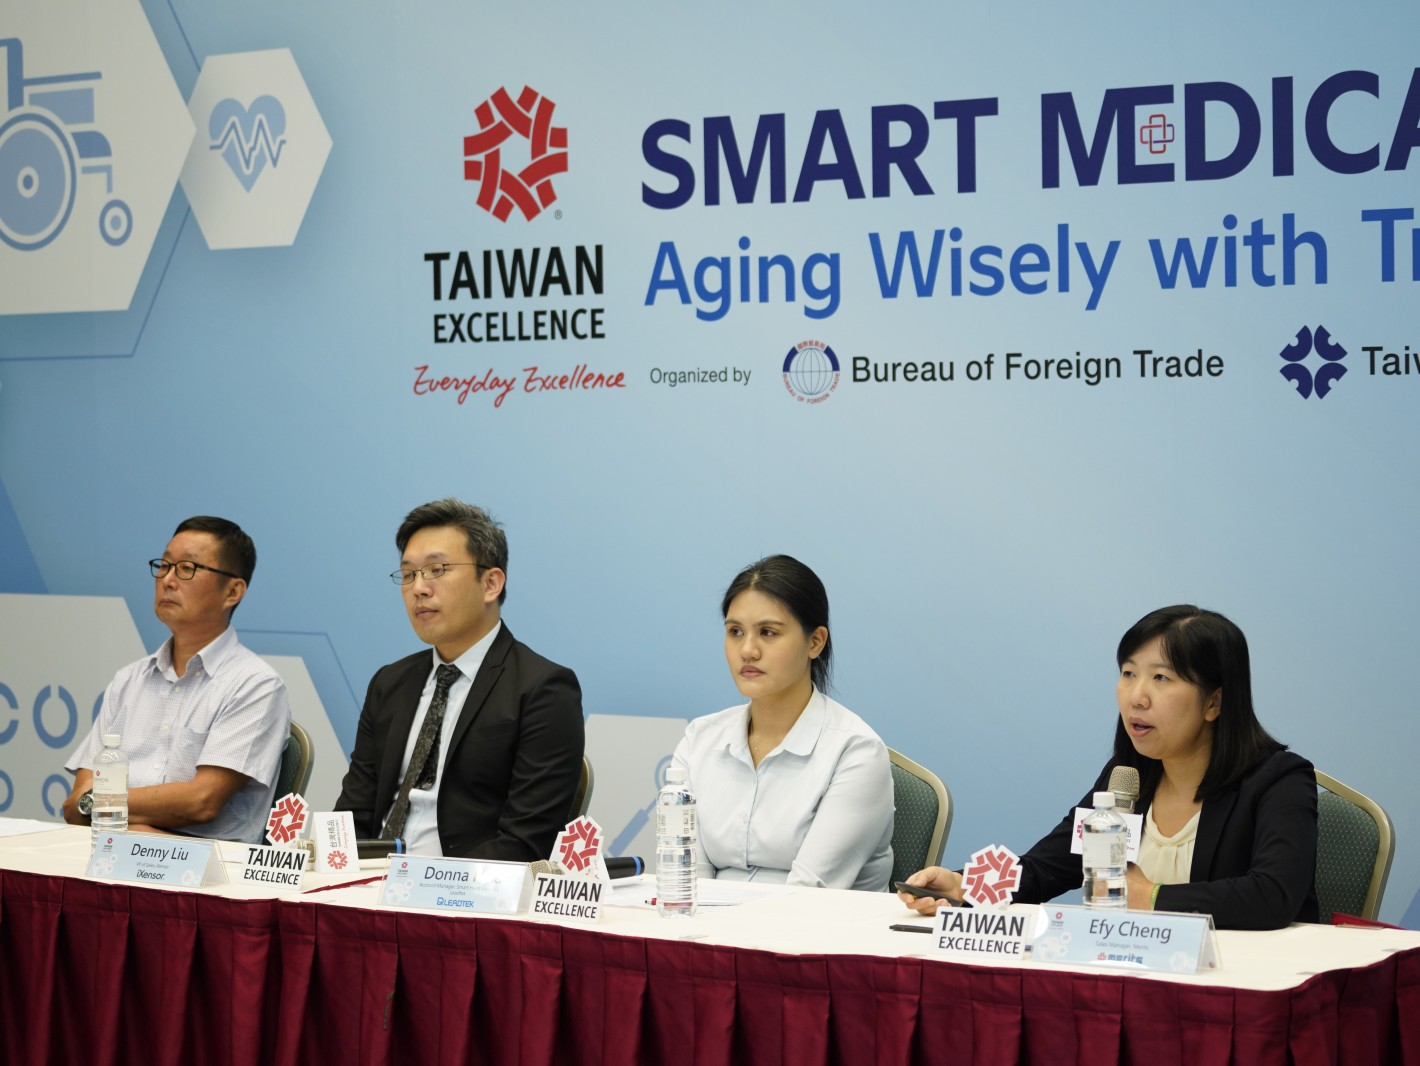 Taiwan Excellence product launch revealed the innovative devices and best healthcare for smart aging